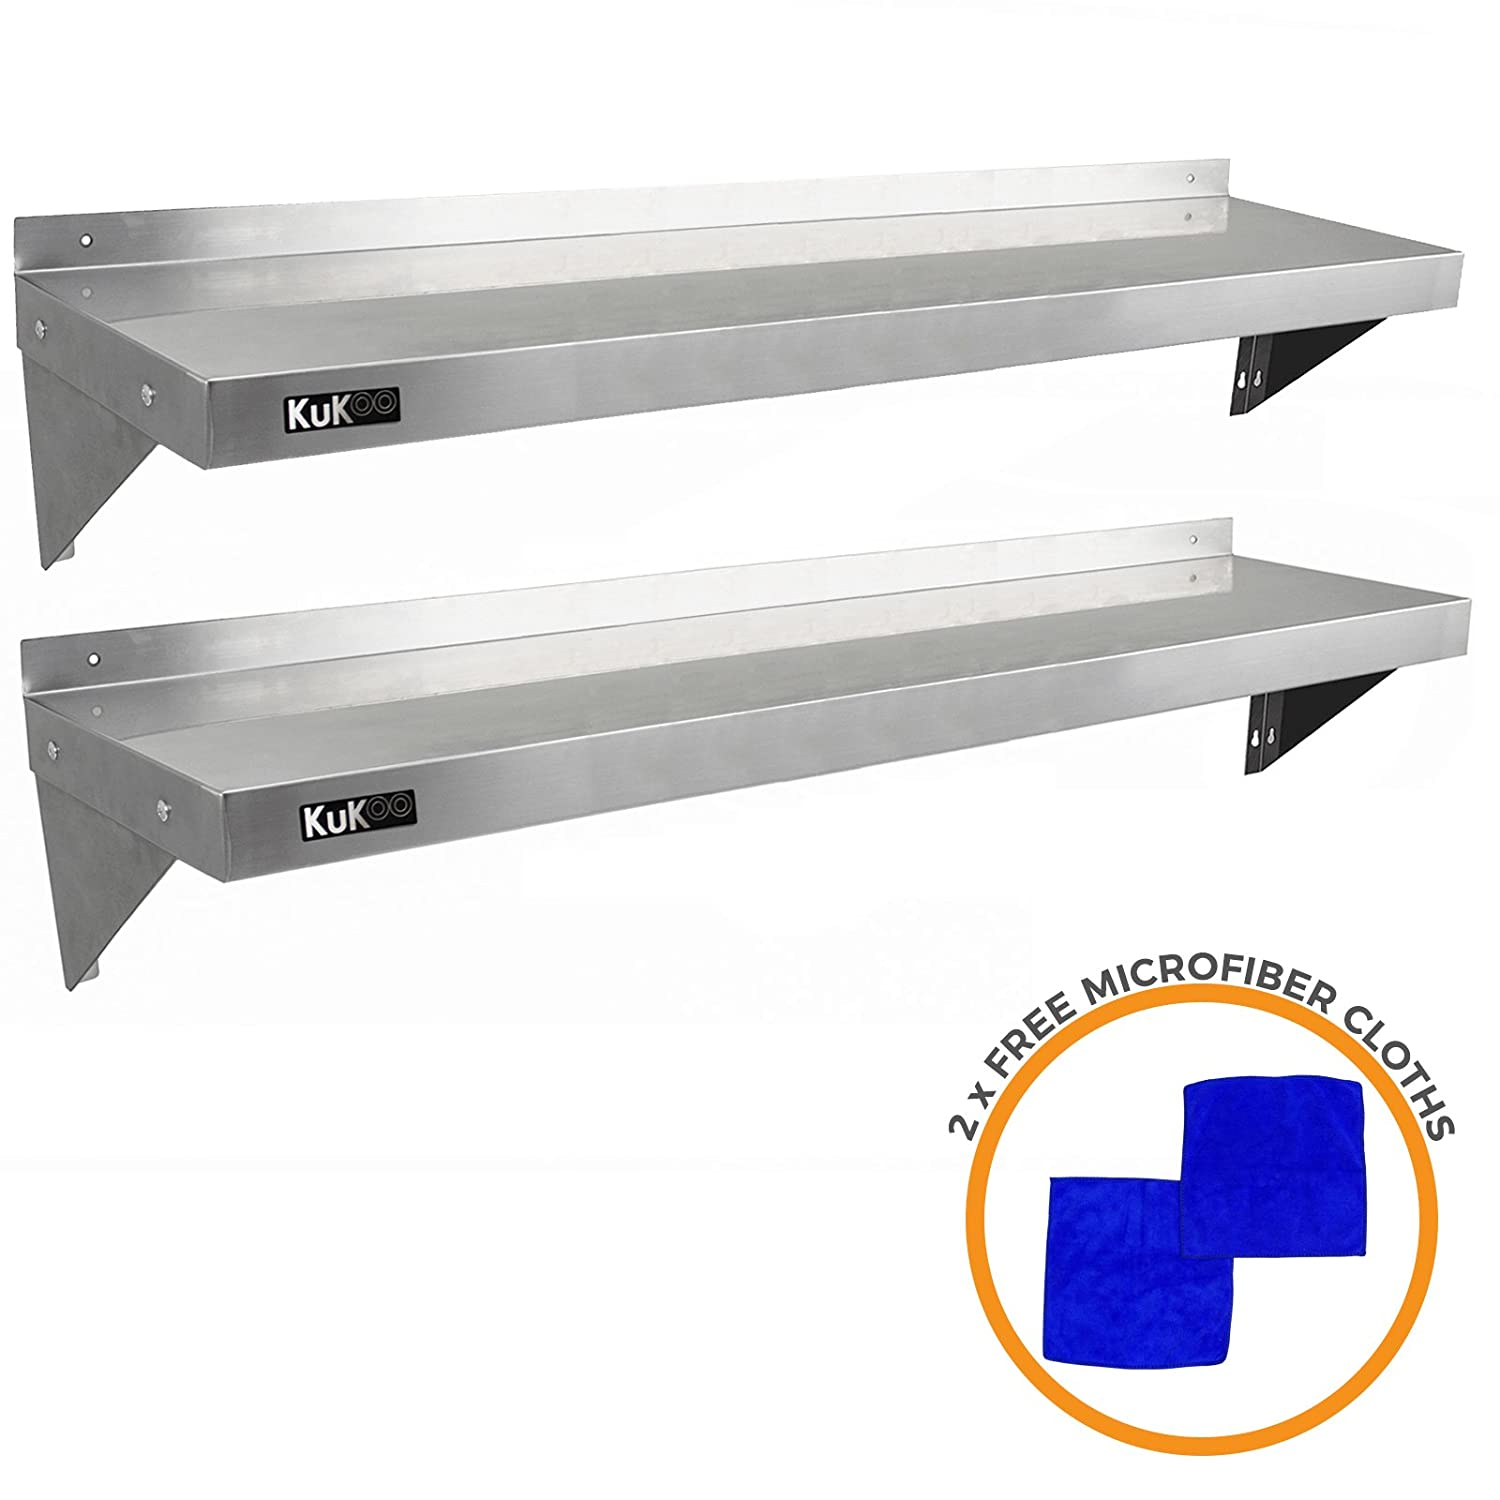 2 x kukoo commercial stainless steel kitchen wall shelf catering corrosion resistant free microfiber cloths 1400mm x 300mm amazon co uk welcome